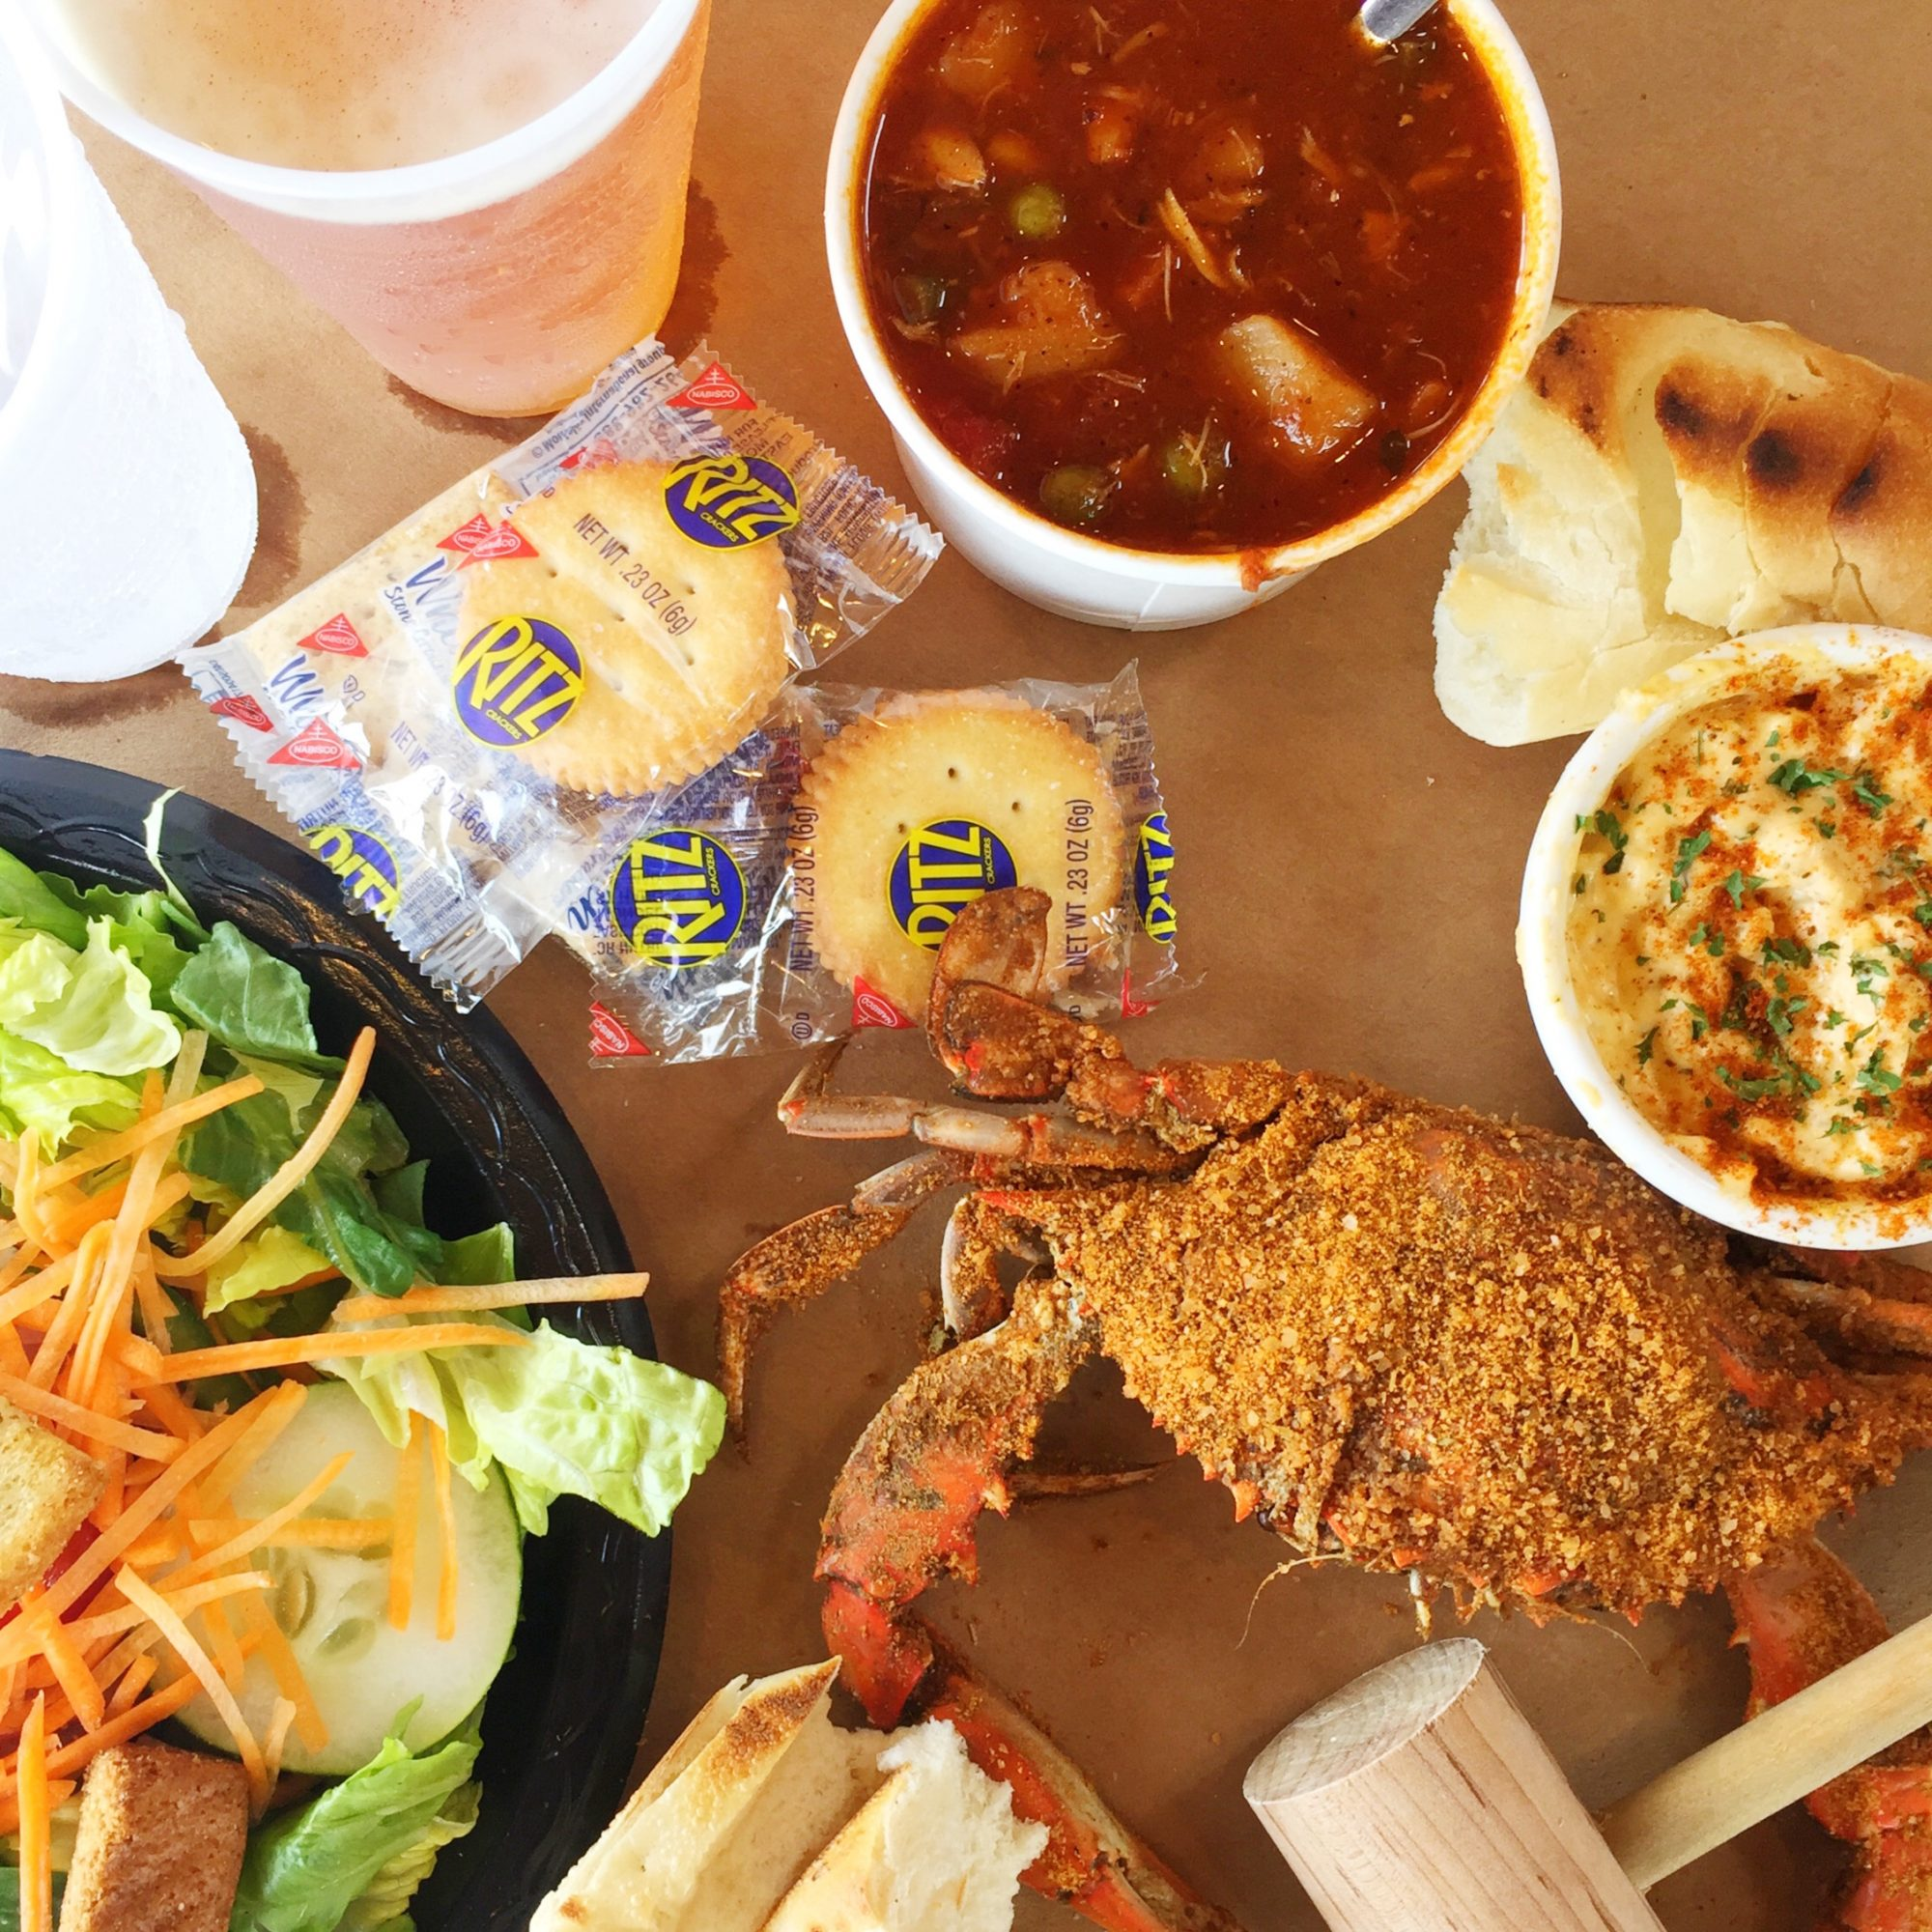 For a time-honored crab ritual, wait on line for an outdoor table at Cantler's Riverside Inn, a revered crab house perched on Mill Creek outside of town. Try everything (steamed crab, crab dip, Maryland crab soup), enjoy the company of devoted l